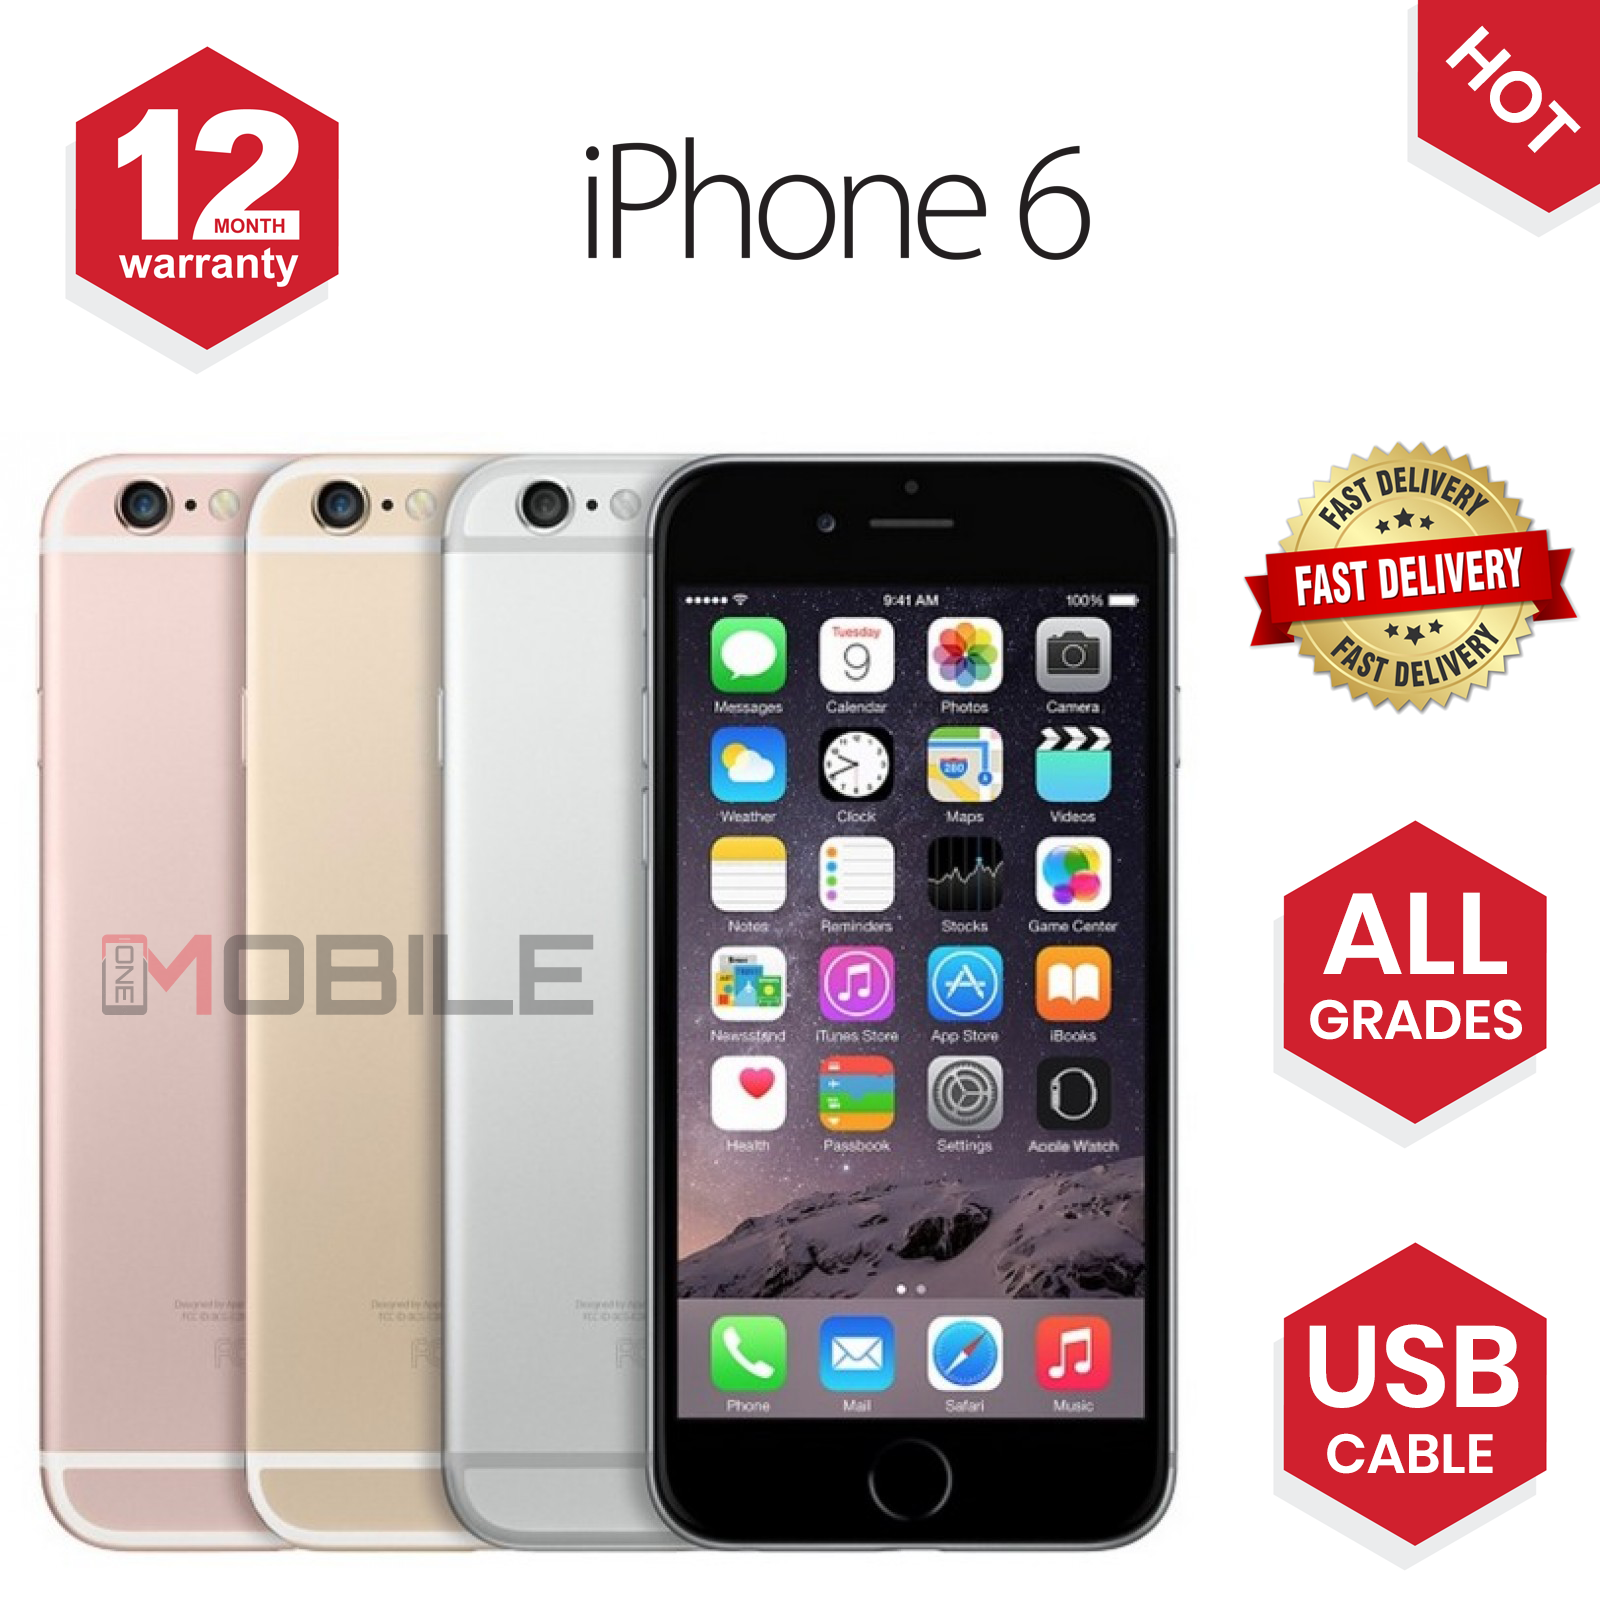 SELLER REFURBISHED APPLE IPHONE 6 16GB/64GB UNLOCKED SIM FREE SMARTPHONE  - ALL COLOURS